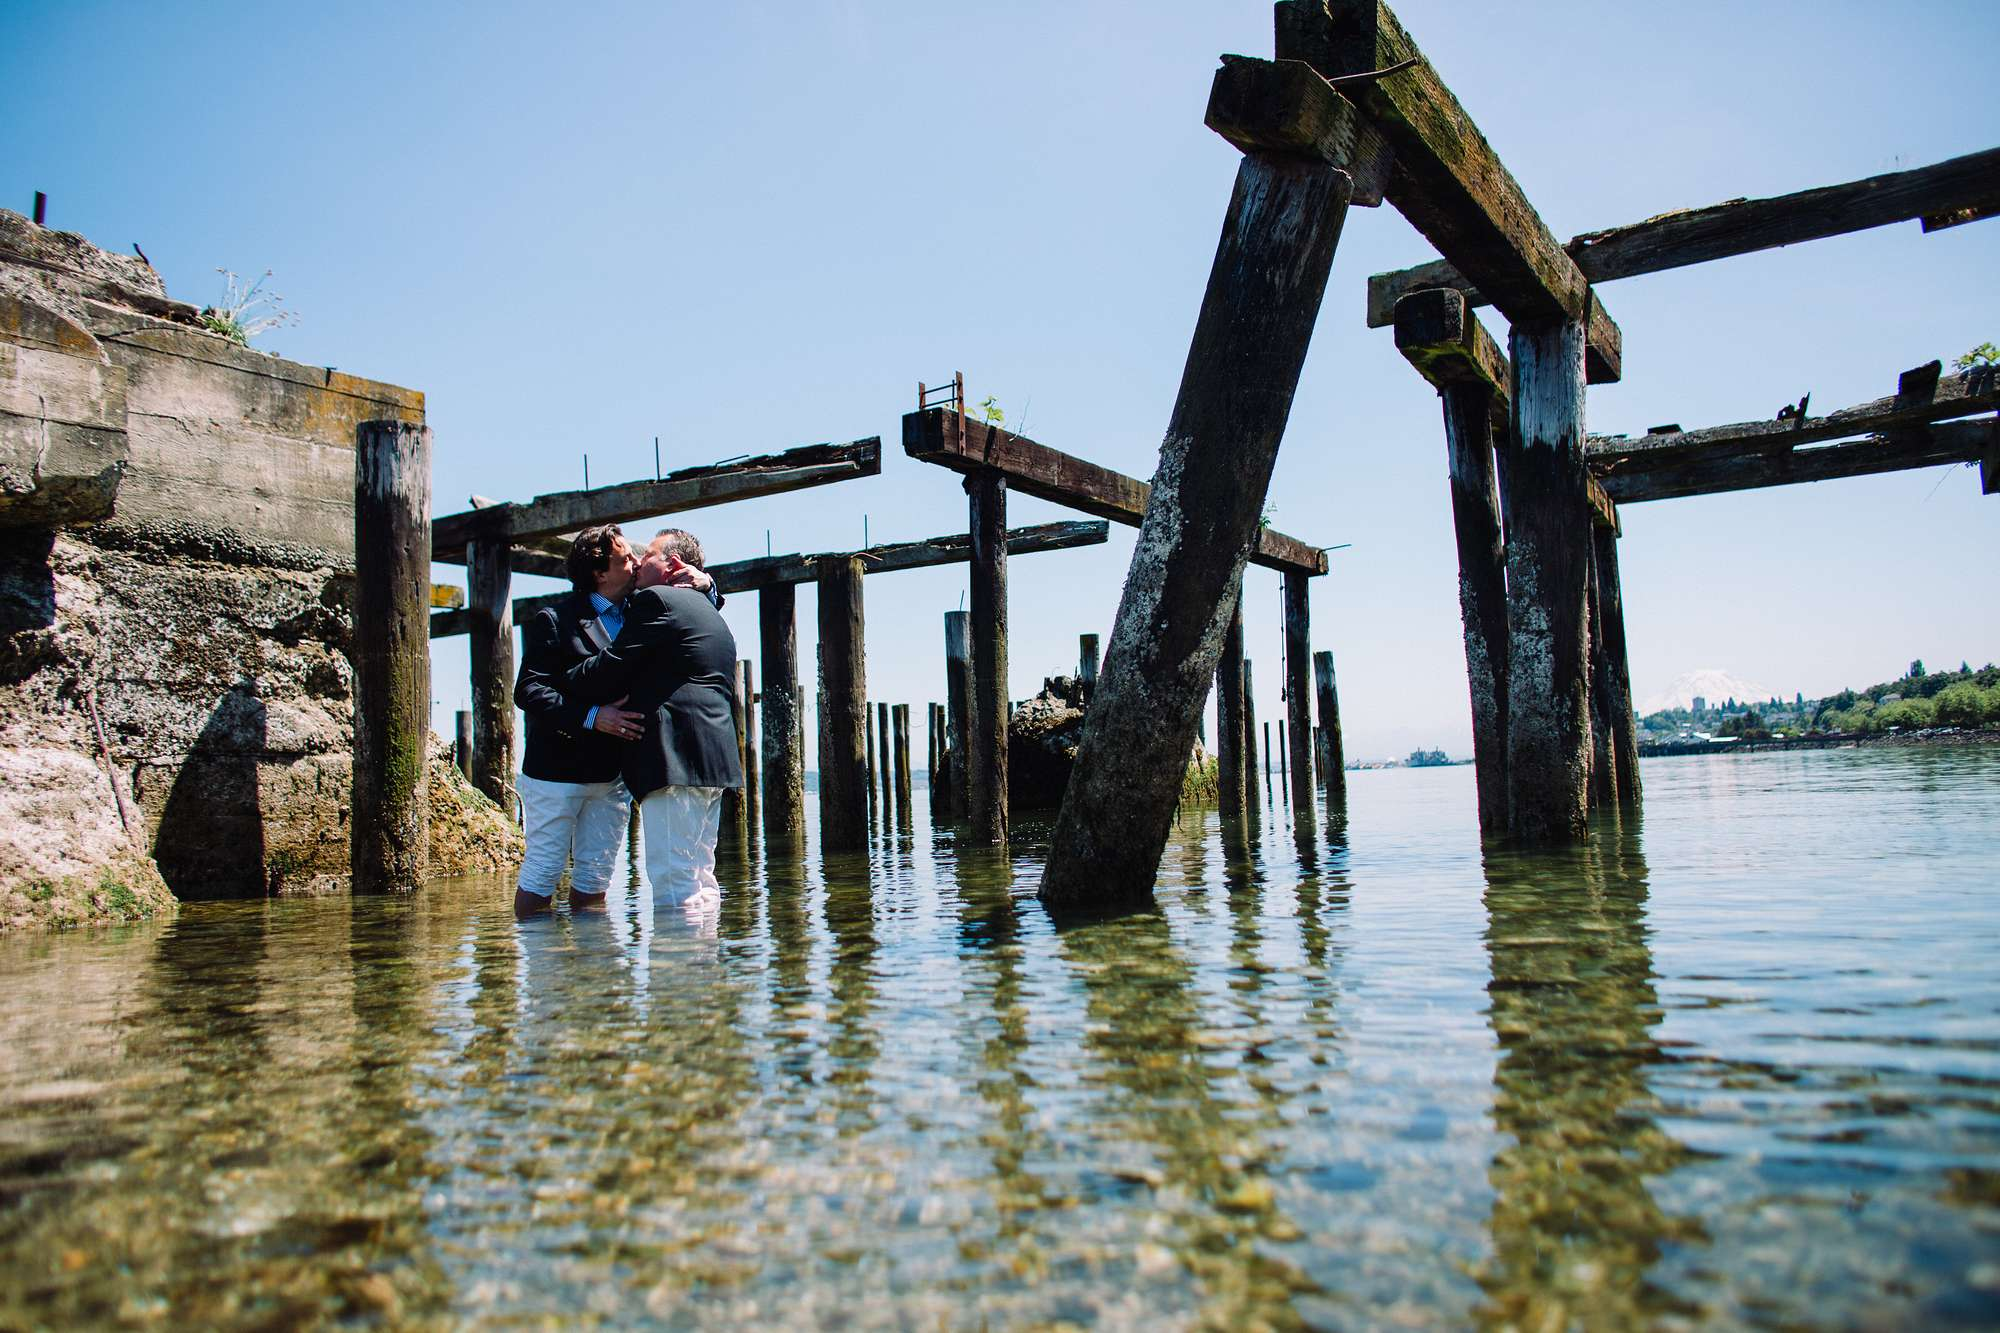 For this one, all three of us were standing in the incredibly cold water. The crushed shells and barnacles were sharp! I really wanted to figure out a way to use the remnants of the ancient dock. Very fun!